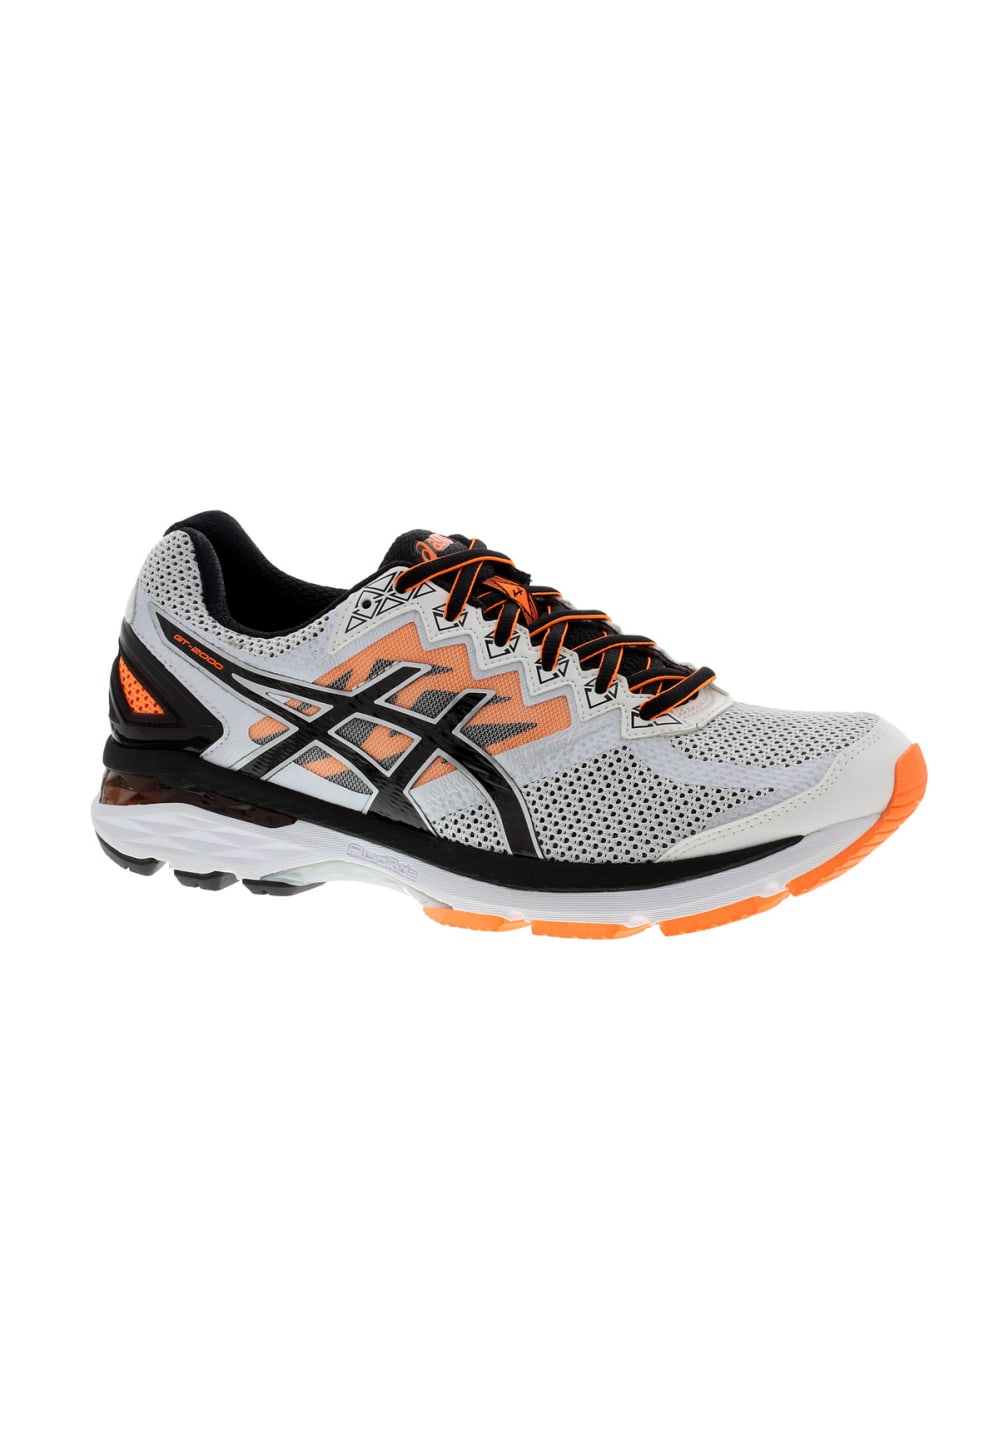 ASICS GT 2000 4 Chaussures running pour Homme Gris